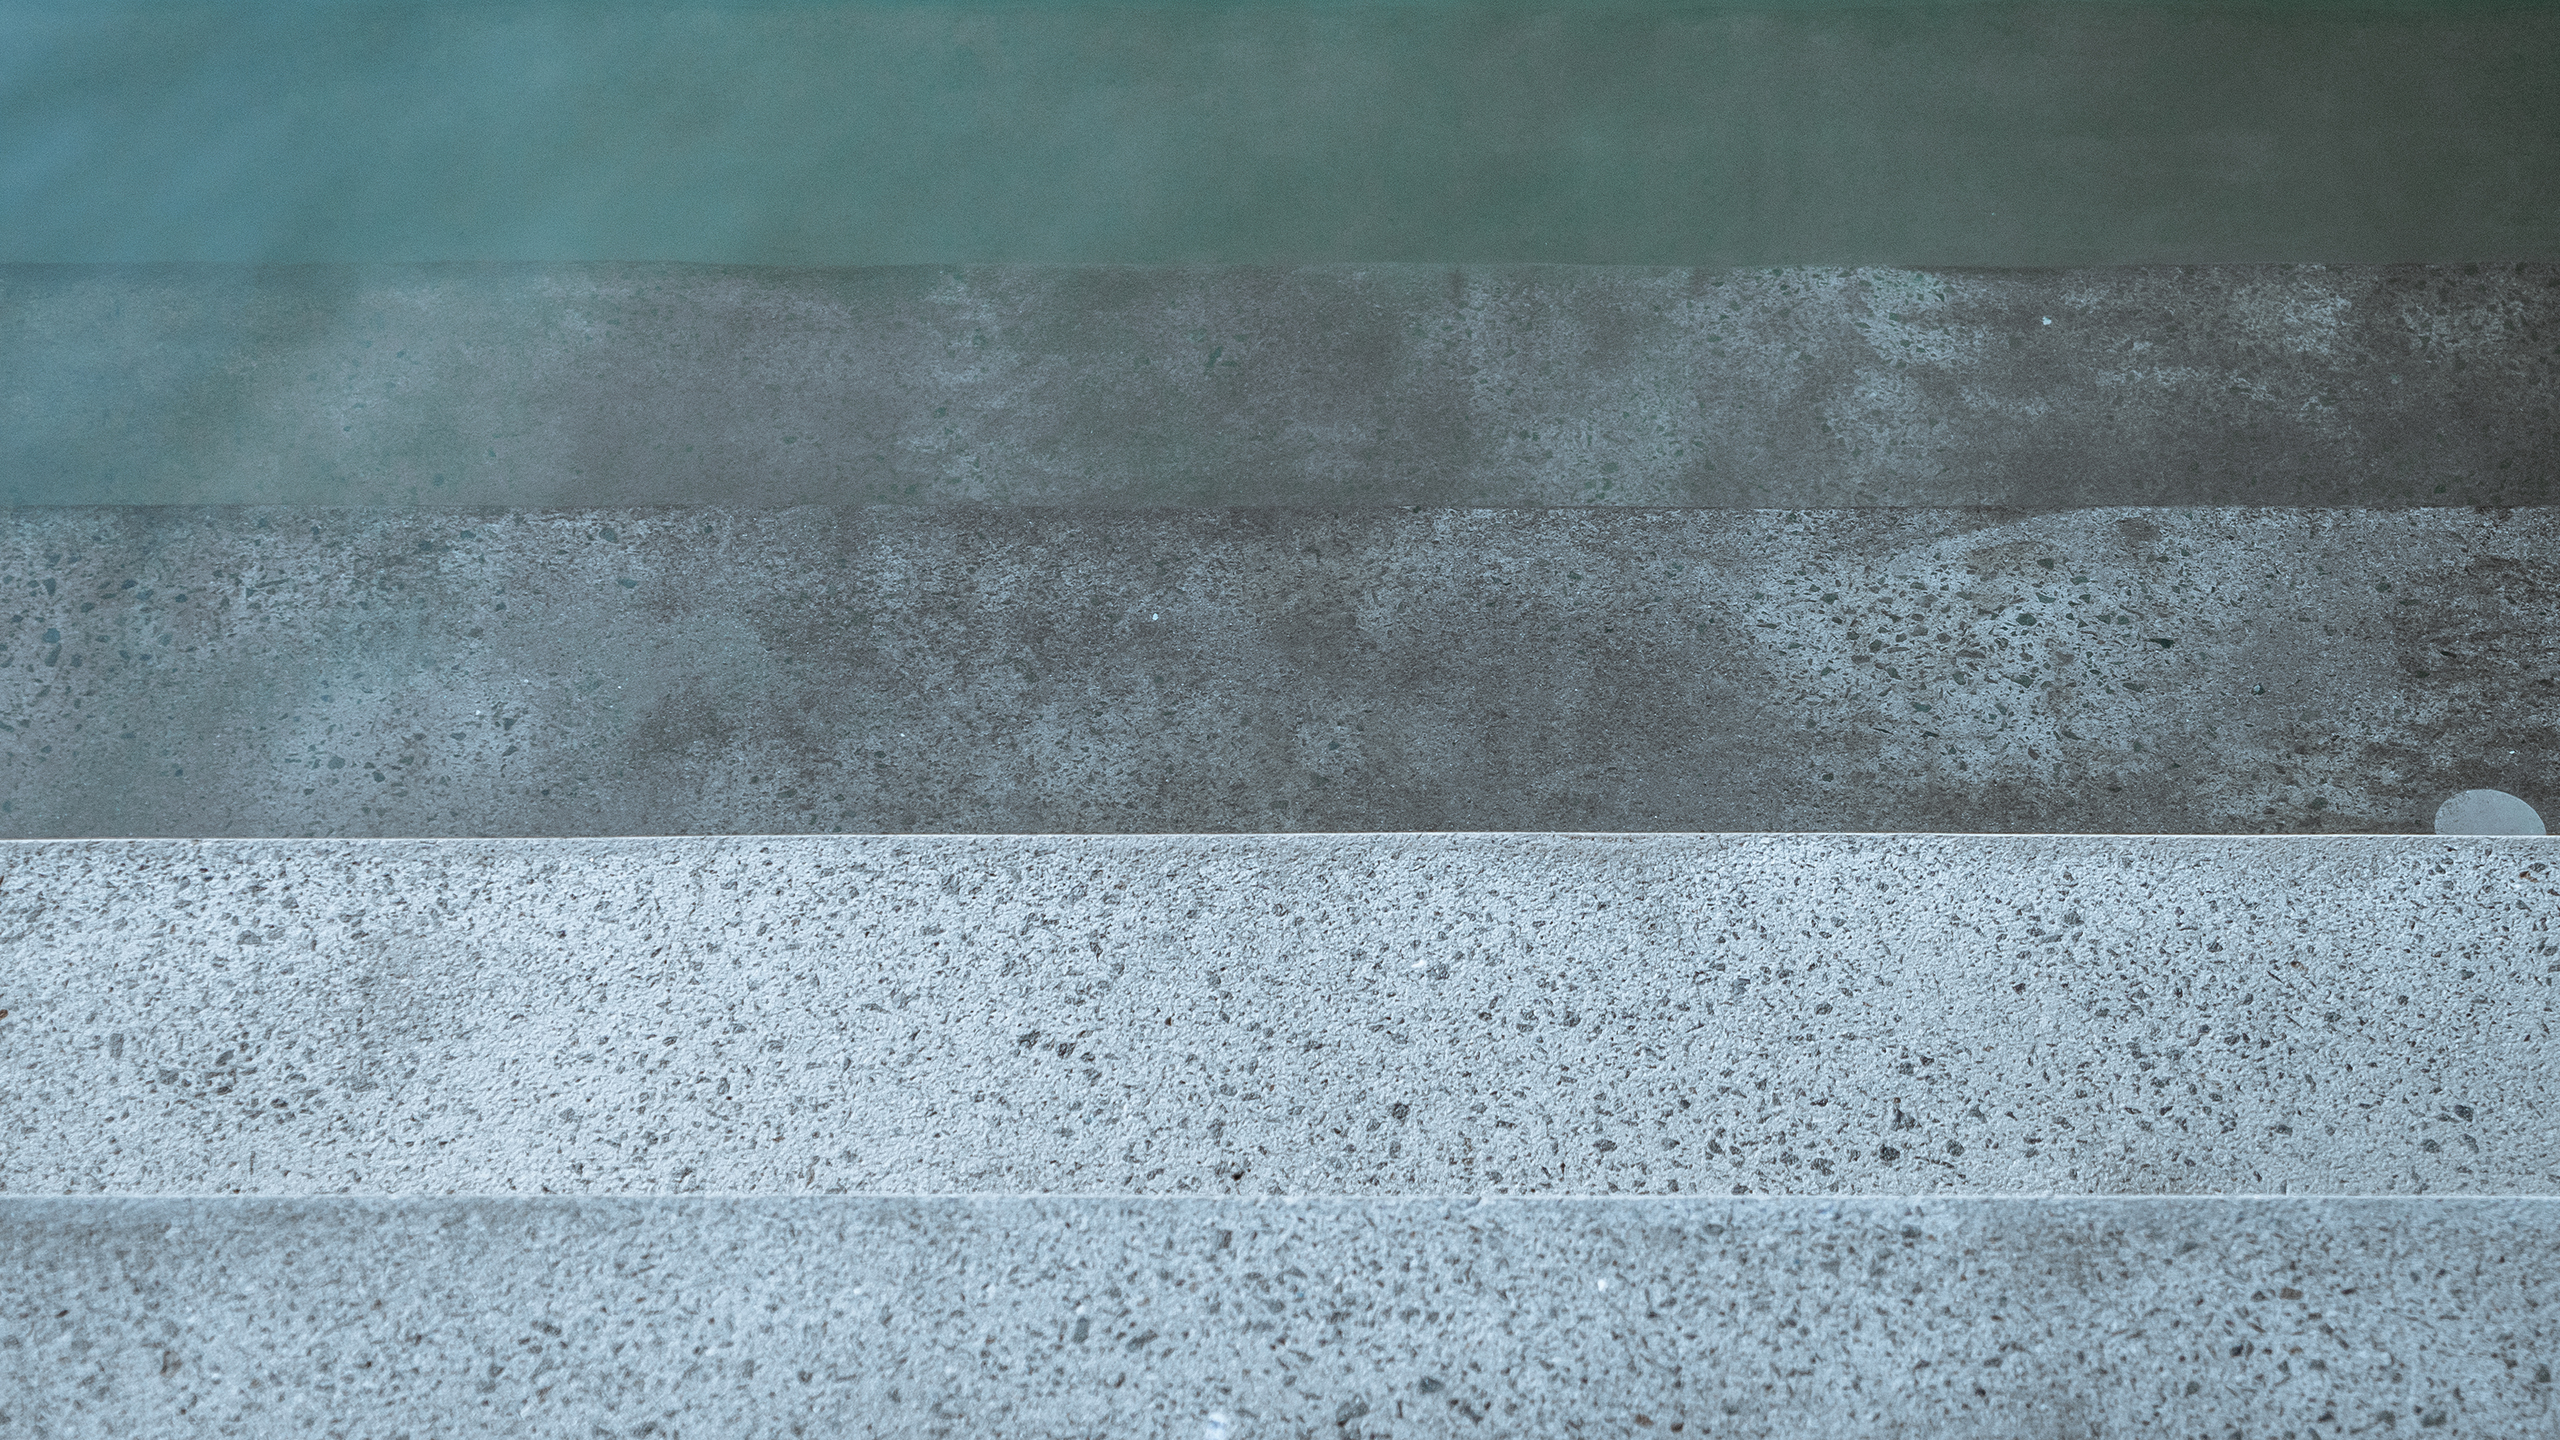 Textured concrete steps